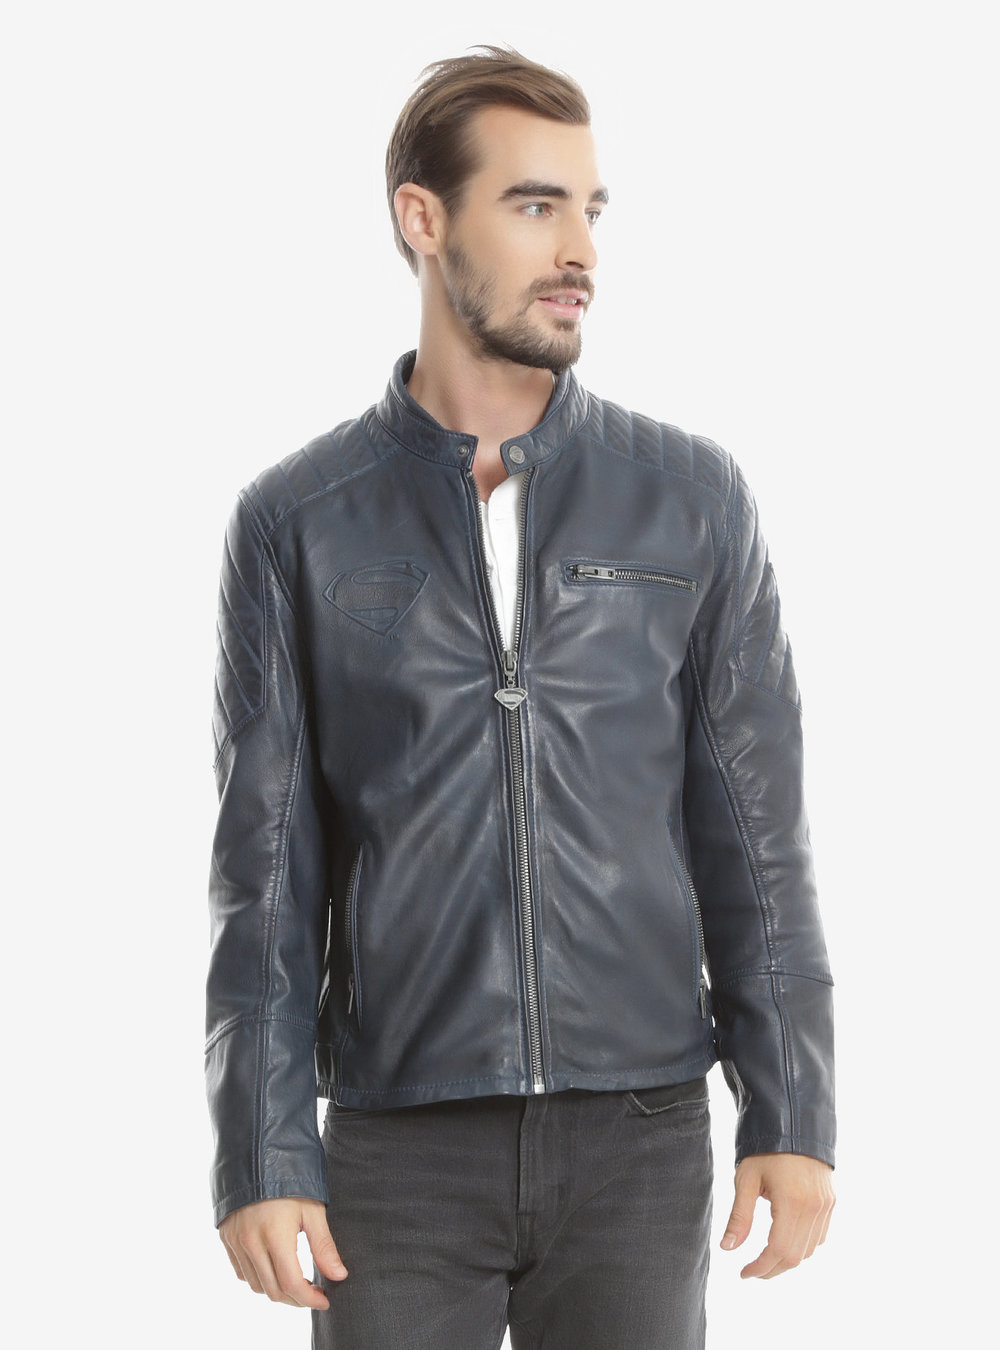 Superman Leather Jacket.jpg